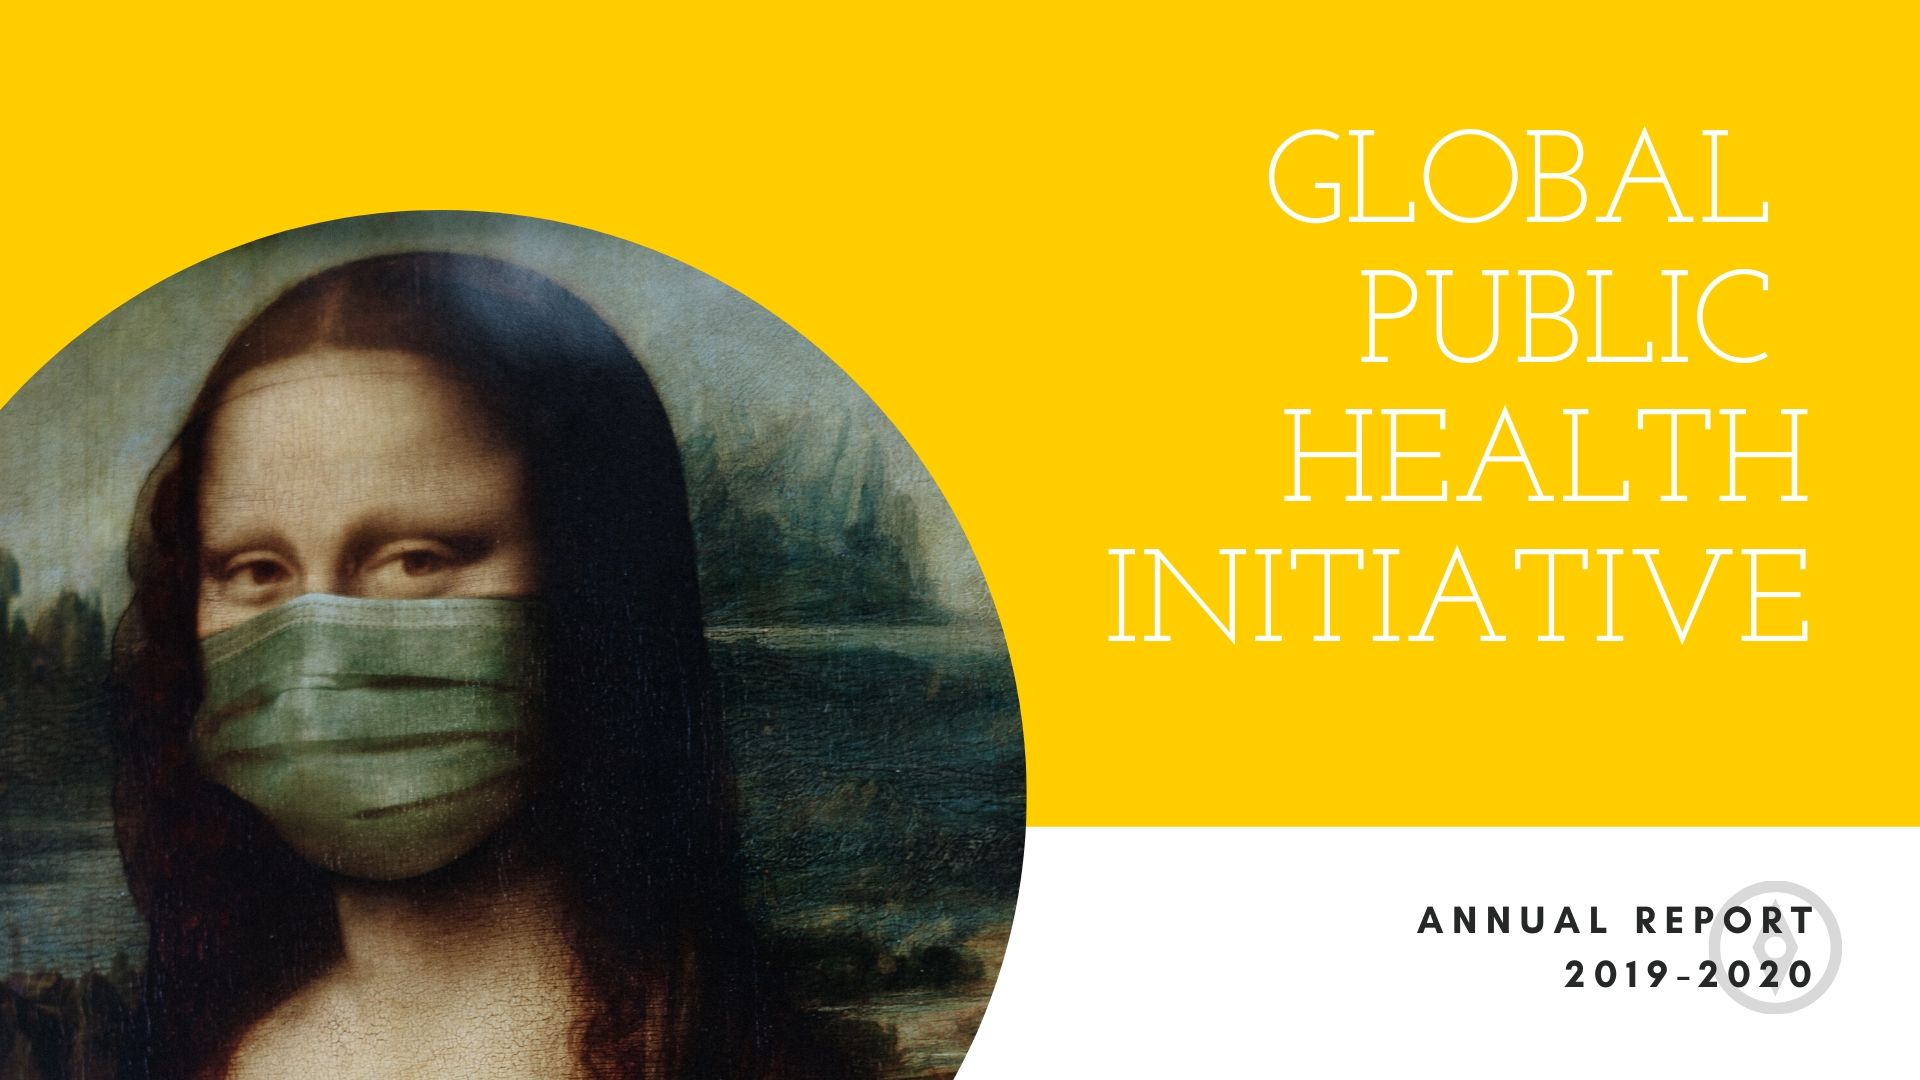 Global Public Health Annual Report cover, 2019-2020